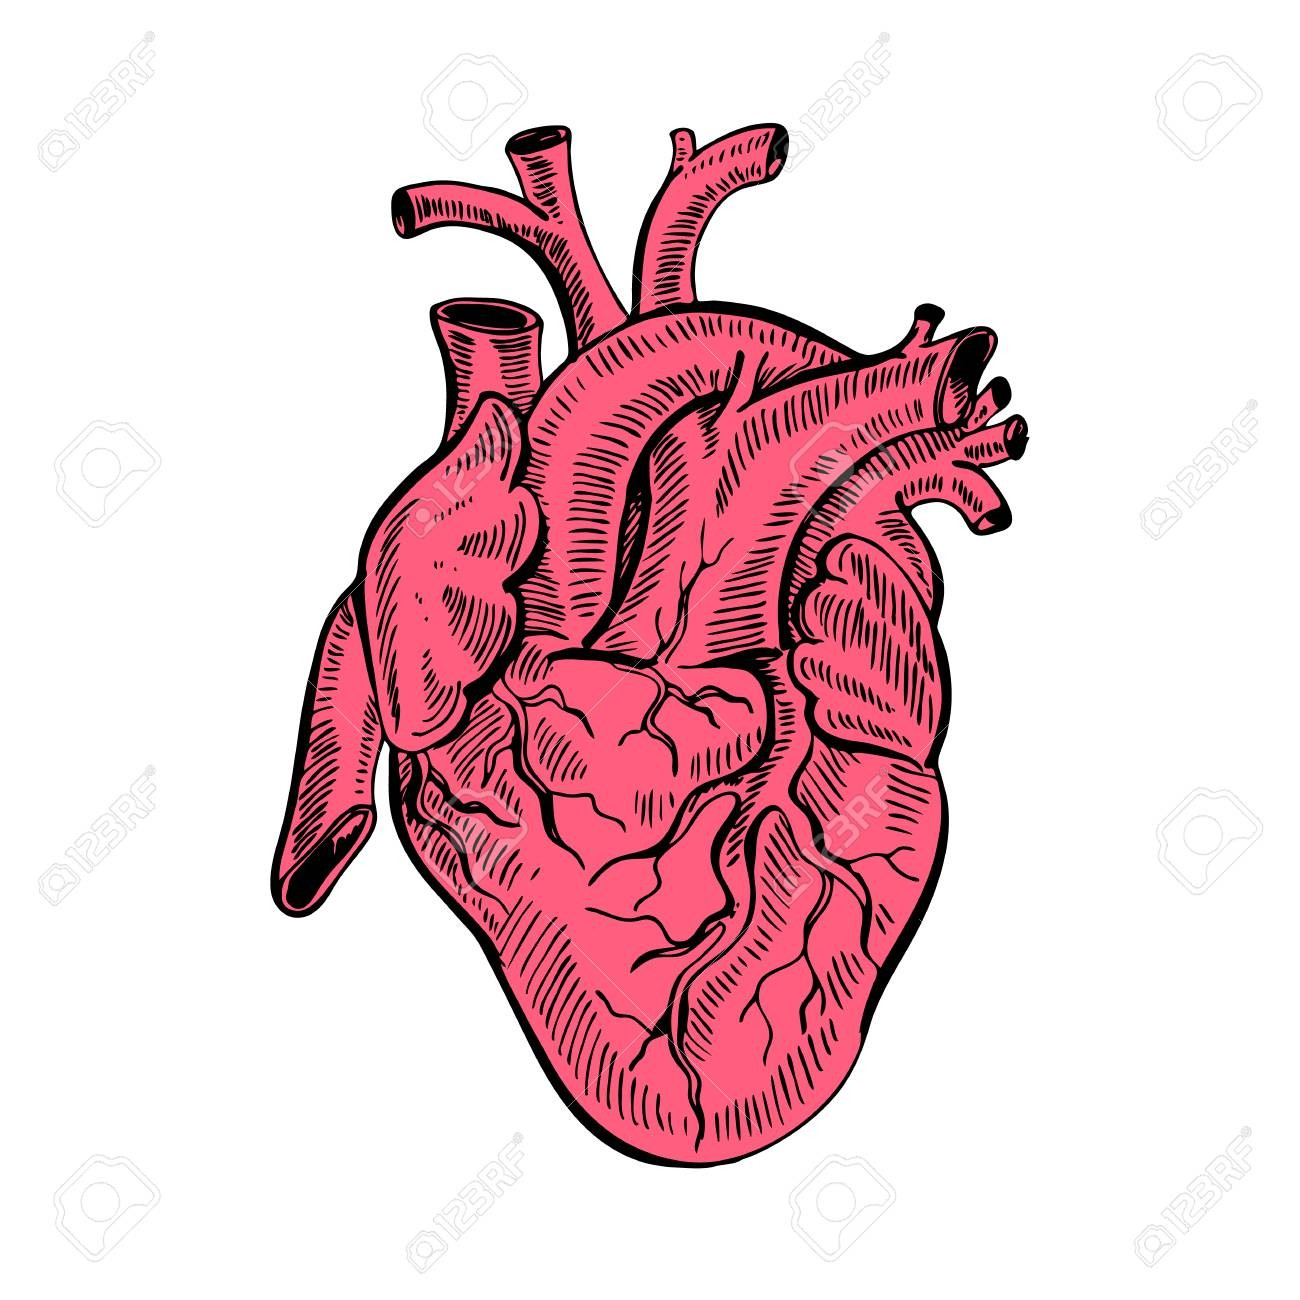 1300x1300 Hand Drawing Sketch Anatomical Heart Cartoon Style Vector